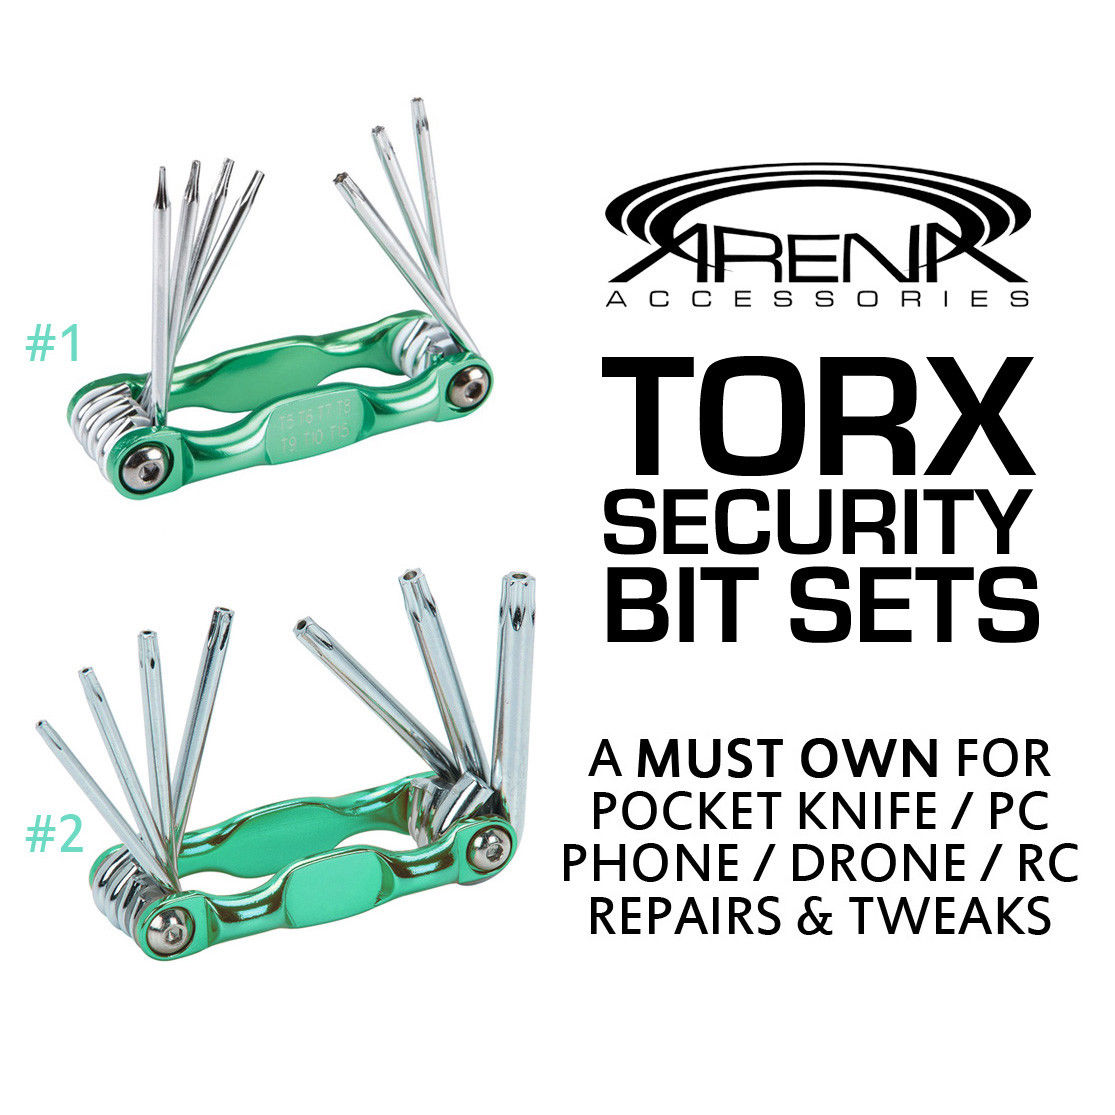 TORX Star Hollow Security Bit Hex Key Sets Pocket Knife Drone PC Tune-Up Repair